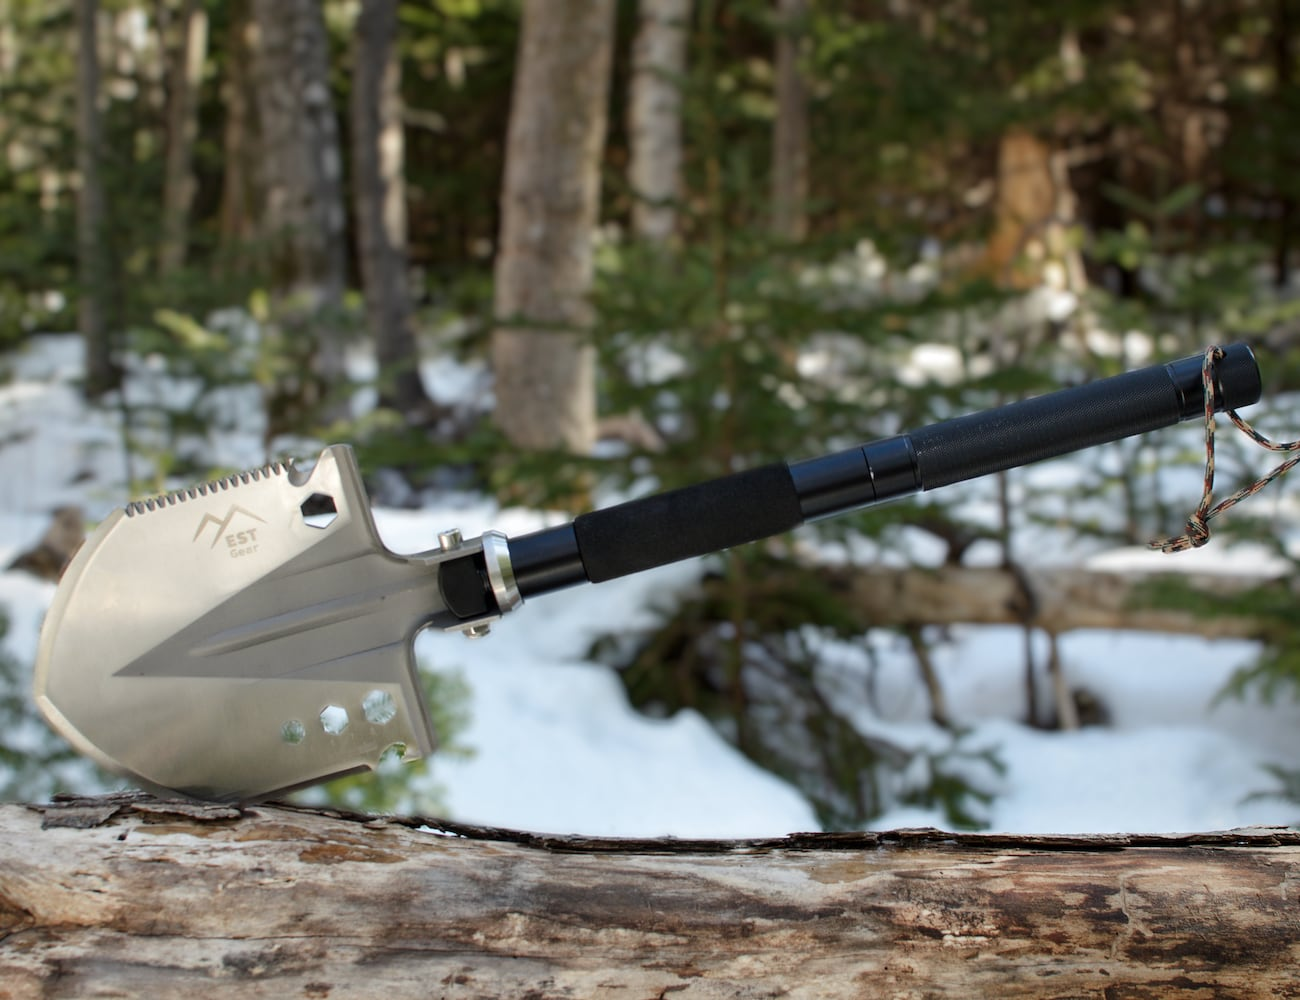 EST Shovel Multipurpose Adventure Tool combines 18 useful features in one loading=